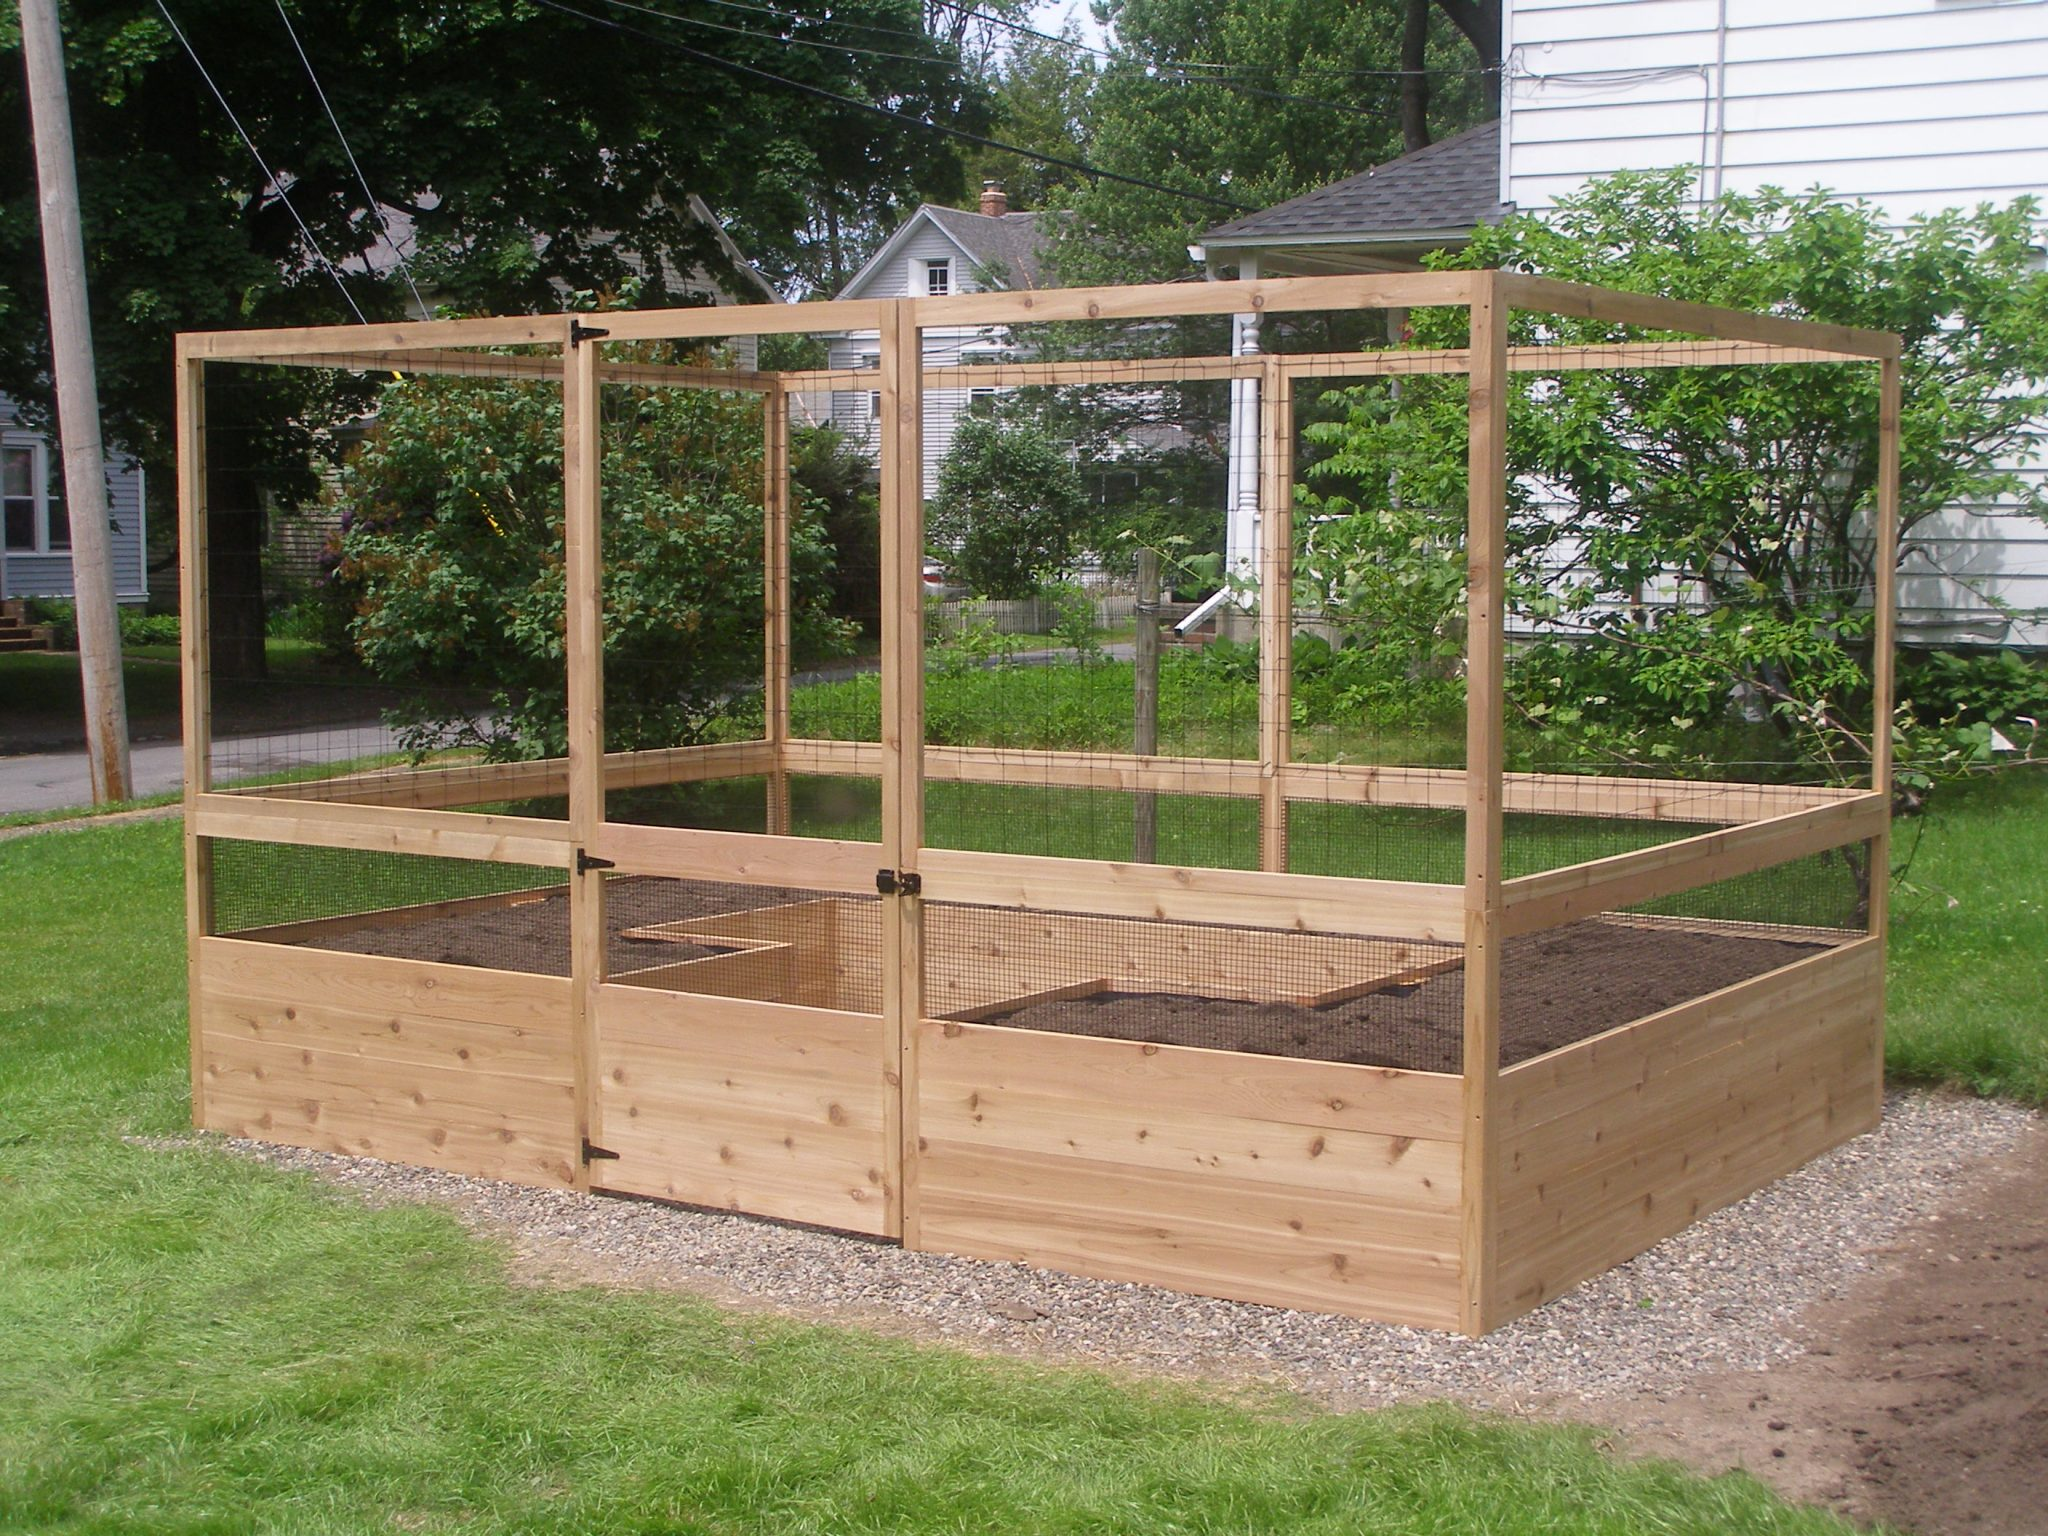 8'x12′ Vegetable Garden Kit – Deer-Proof assembled and filled with soil